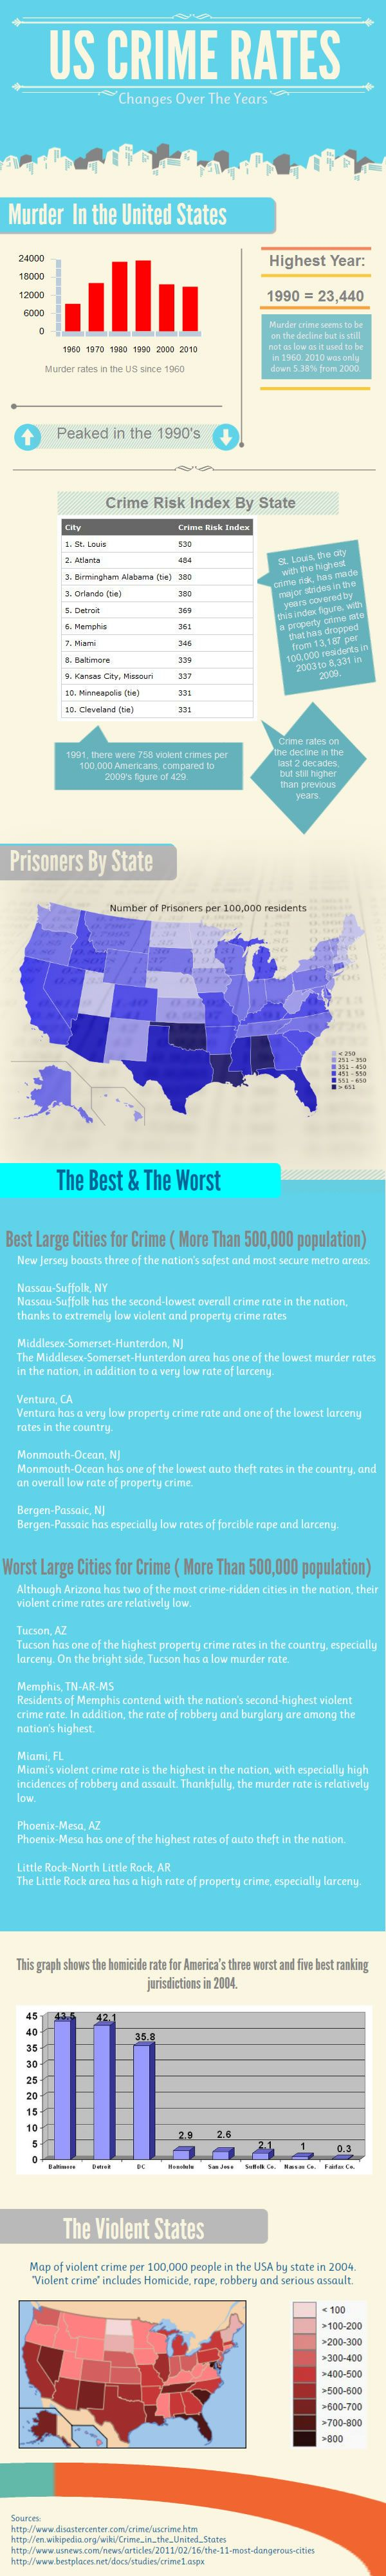 According to this infographic, Hunterdon County, New Jersey has one of the lowest murder rates in the nation, as well as a very low rate of larceny. www.rotololawfirm.com